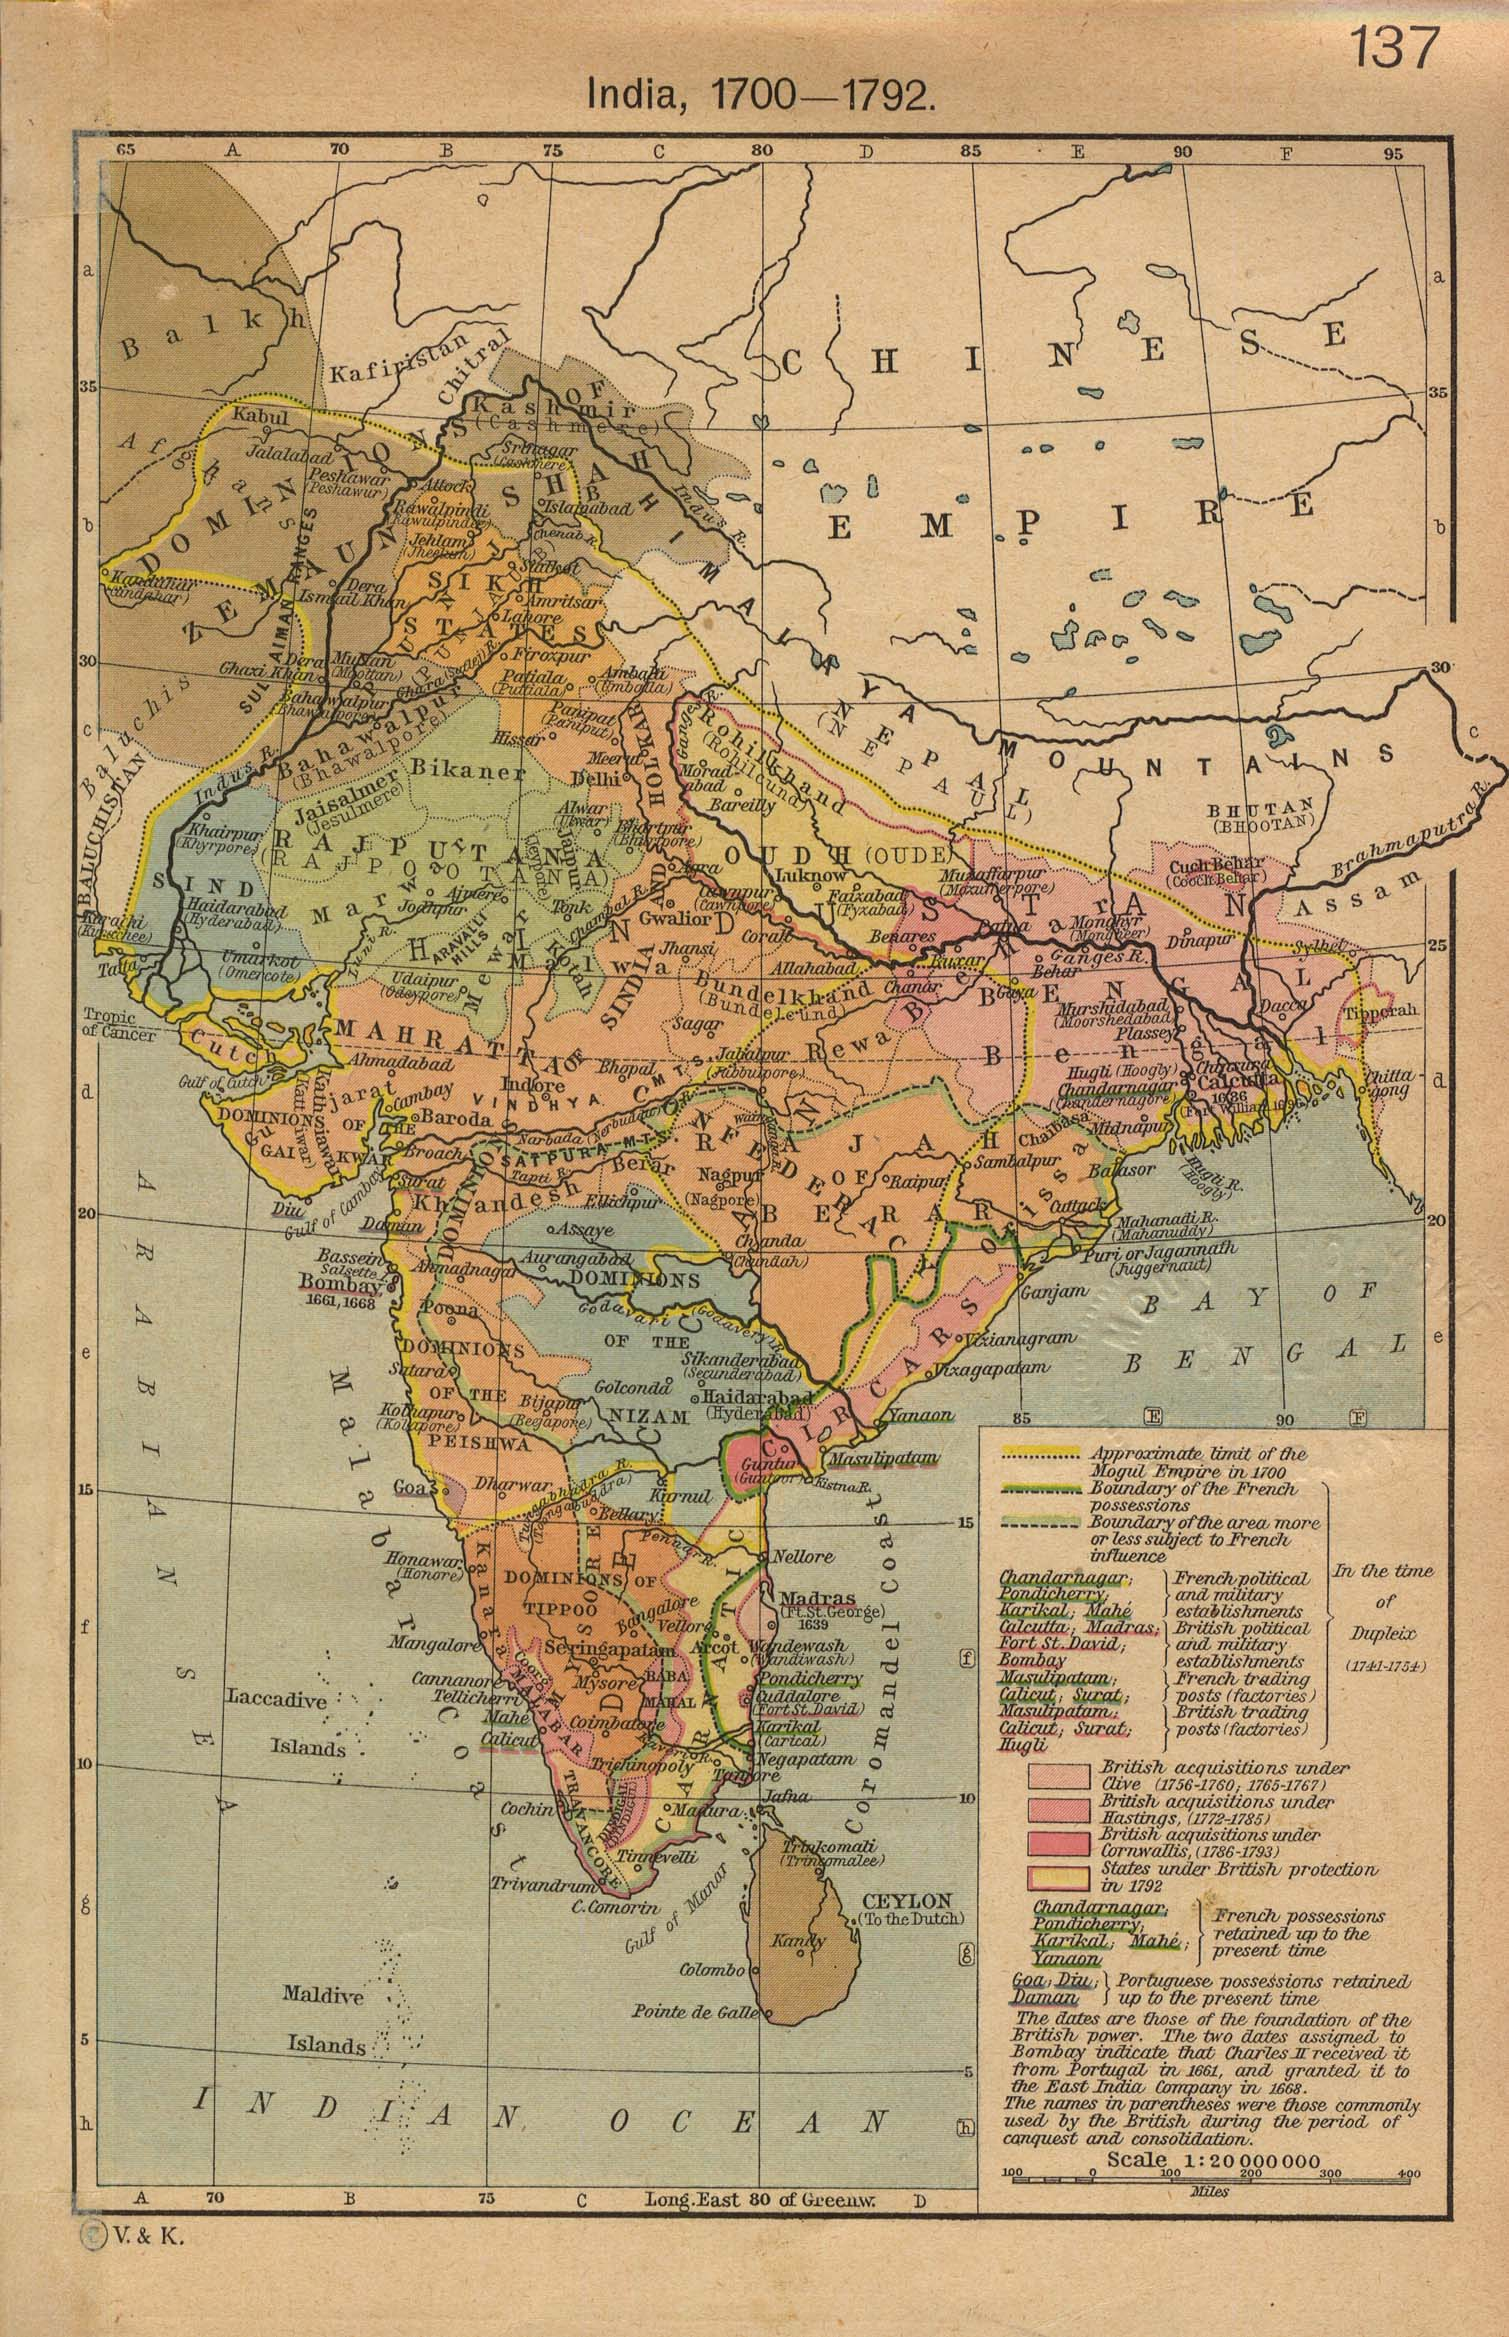 India maps perry castaeda map collection ut library online india 1700 1792 from the historical gumiabroncs Gallery